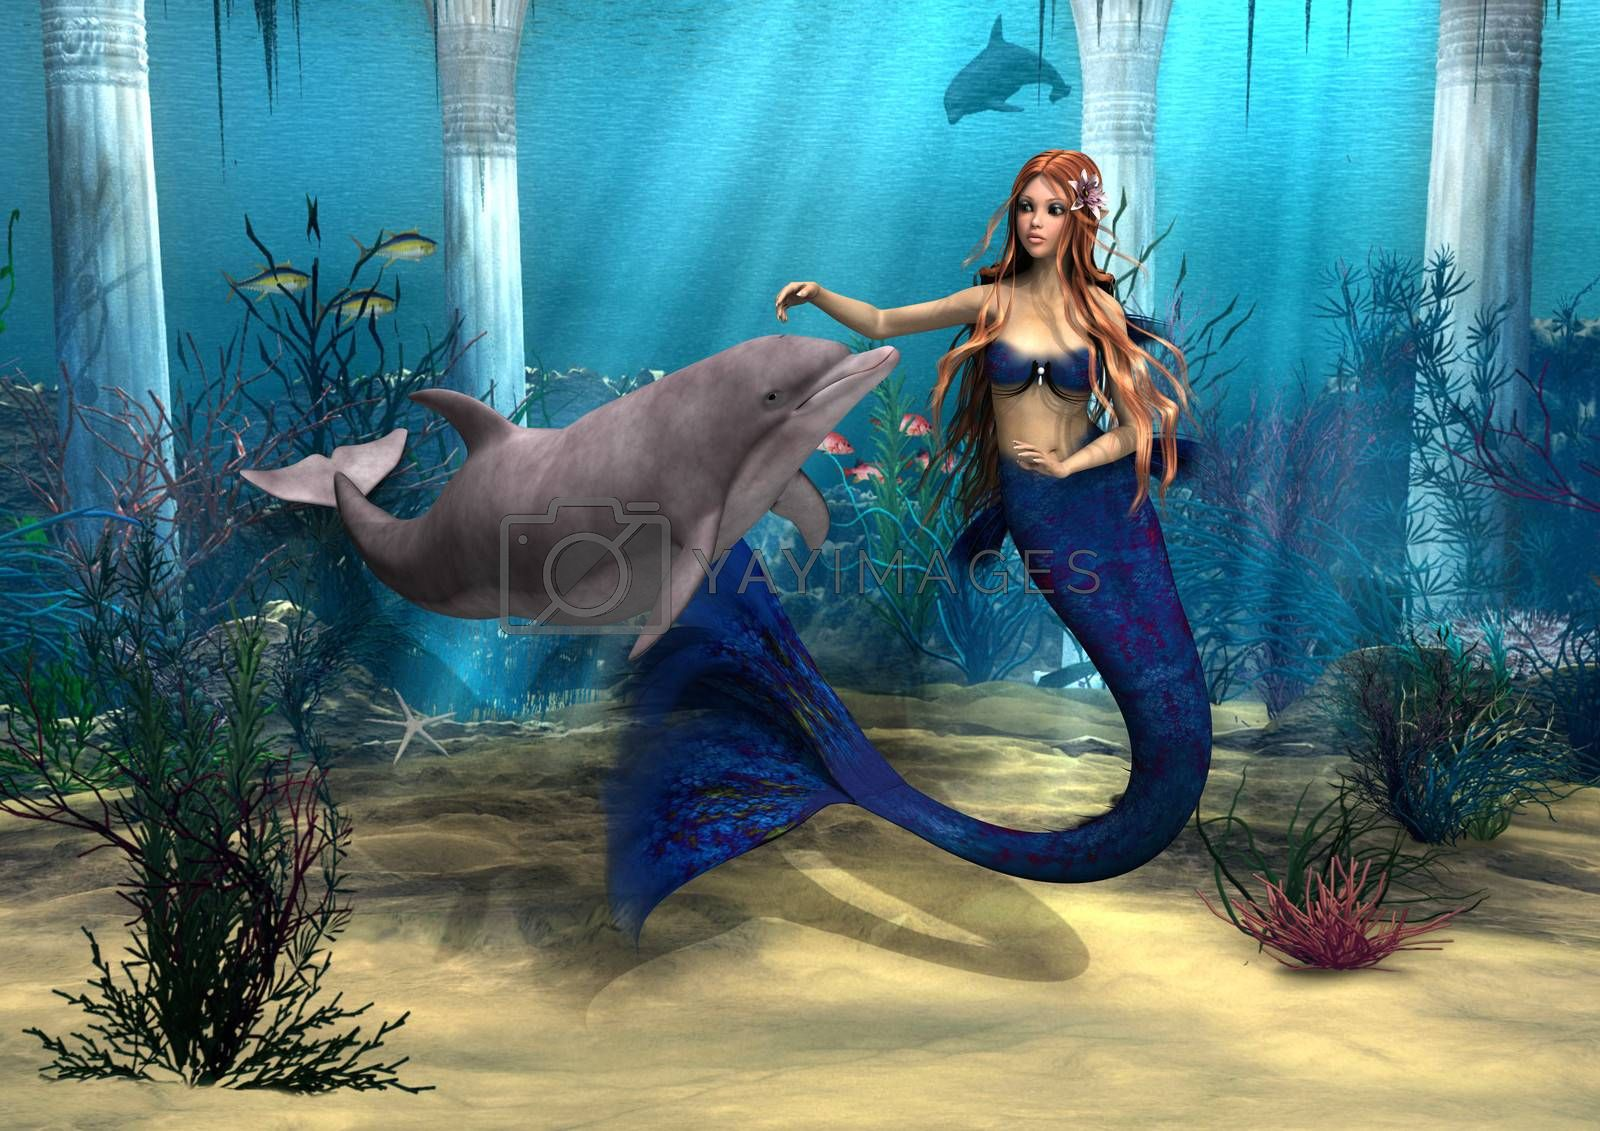 Royalty free image of Mermaid and Dolphin by Vac